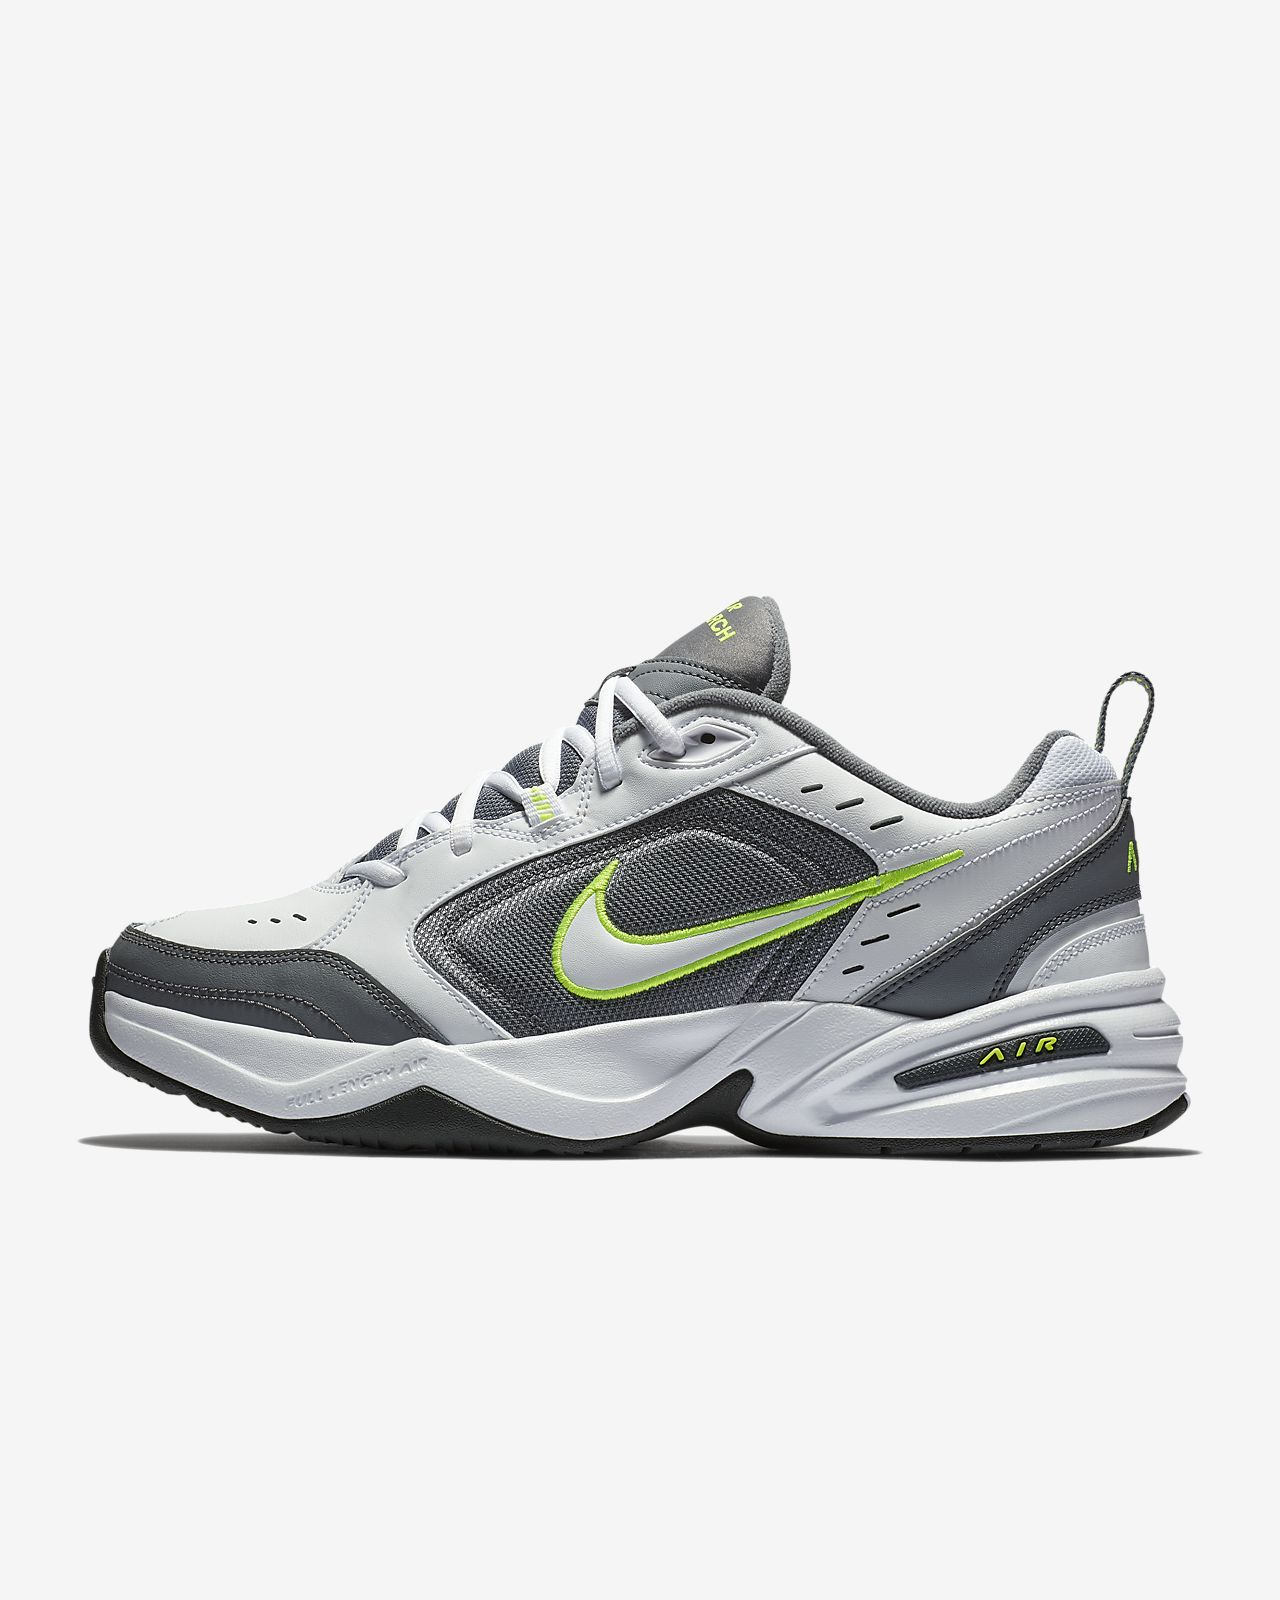 3a40b583403 Nike Air Monarch IV Lifestyle/Gym Shoe. Nike.com